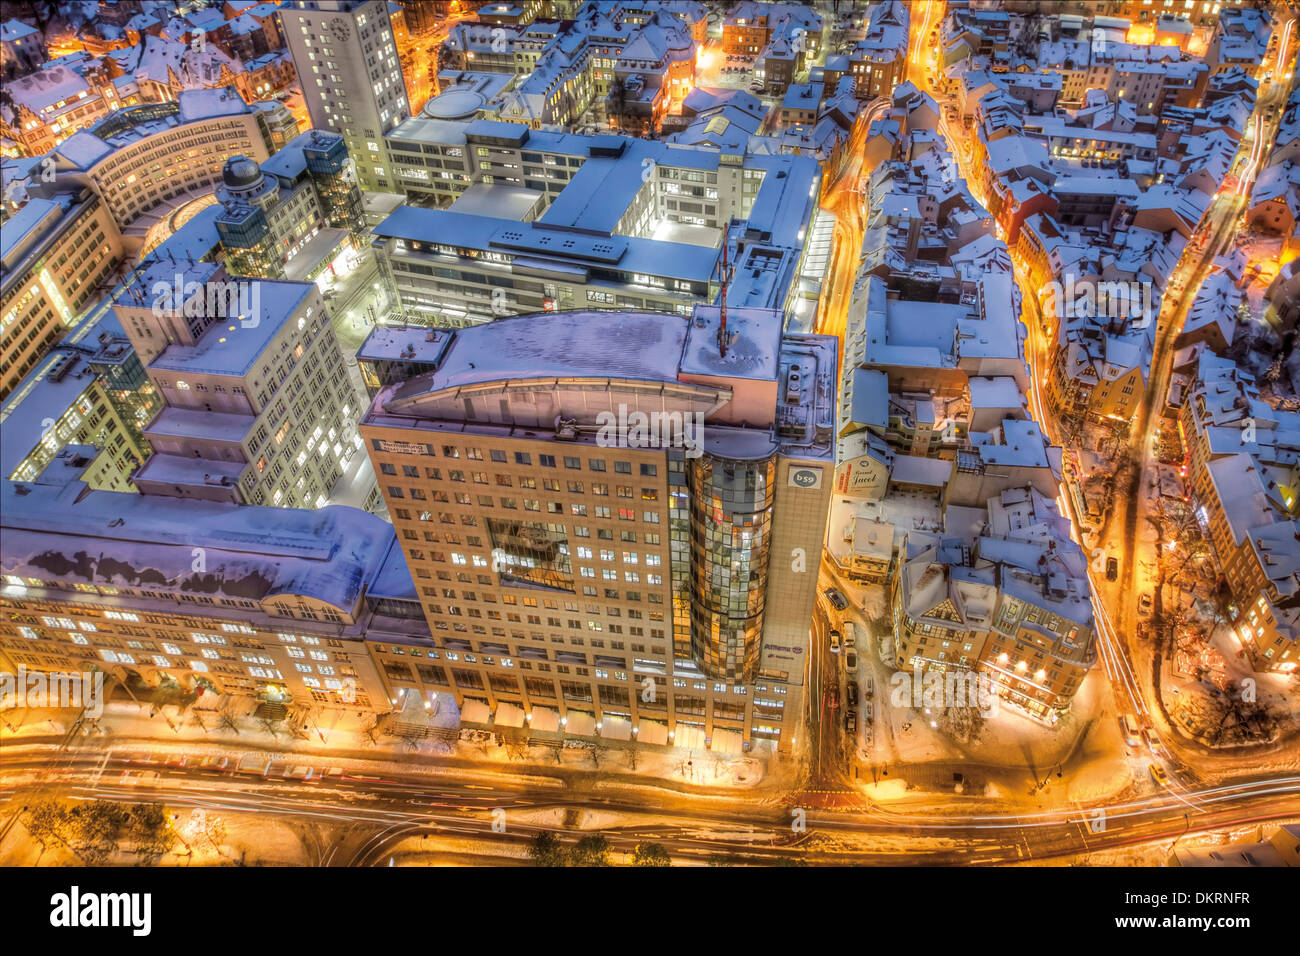 View from Jentower to Ernst-Abbe Platz and the building B59, Jena, Thuringia, Germany, Europe - Stock Image